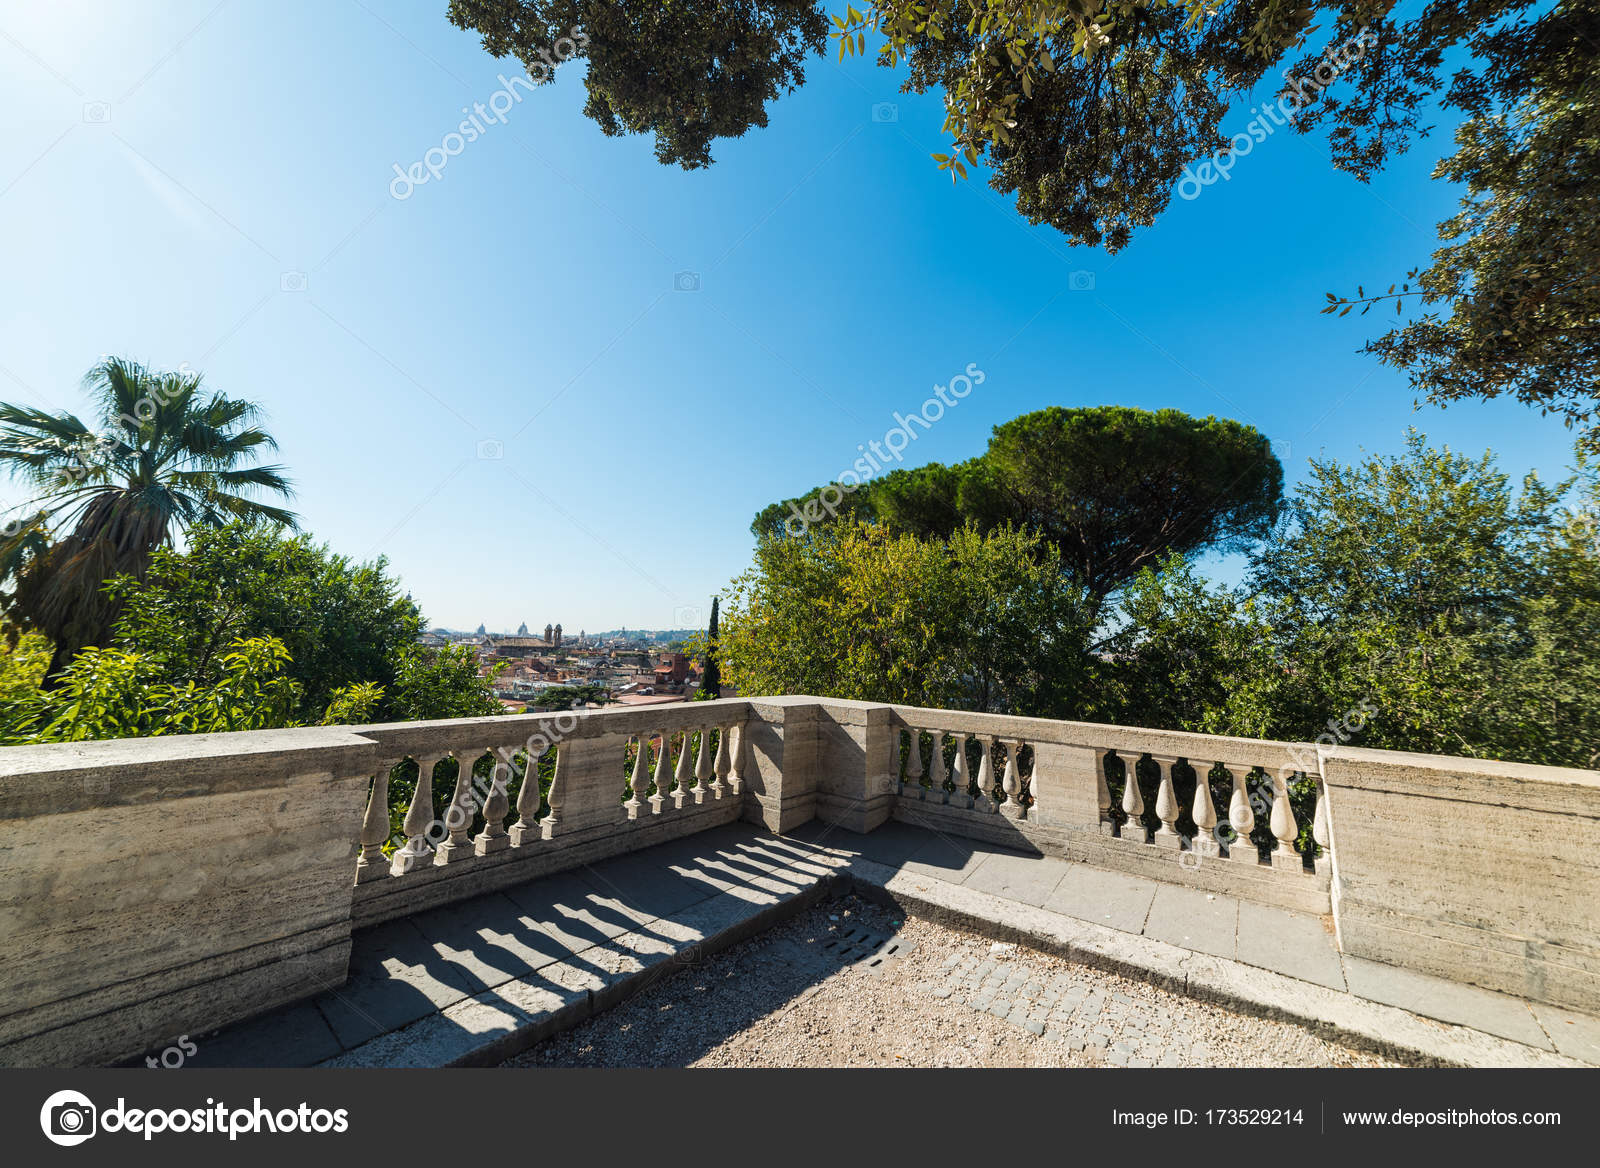 Terrazza del Pincio under a blue sky — Stock Photo © AlKan32 #173529214